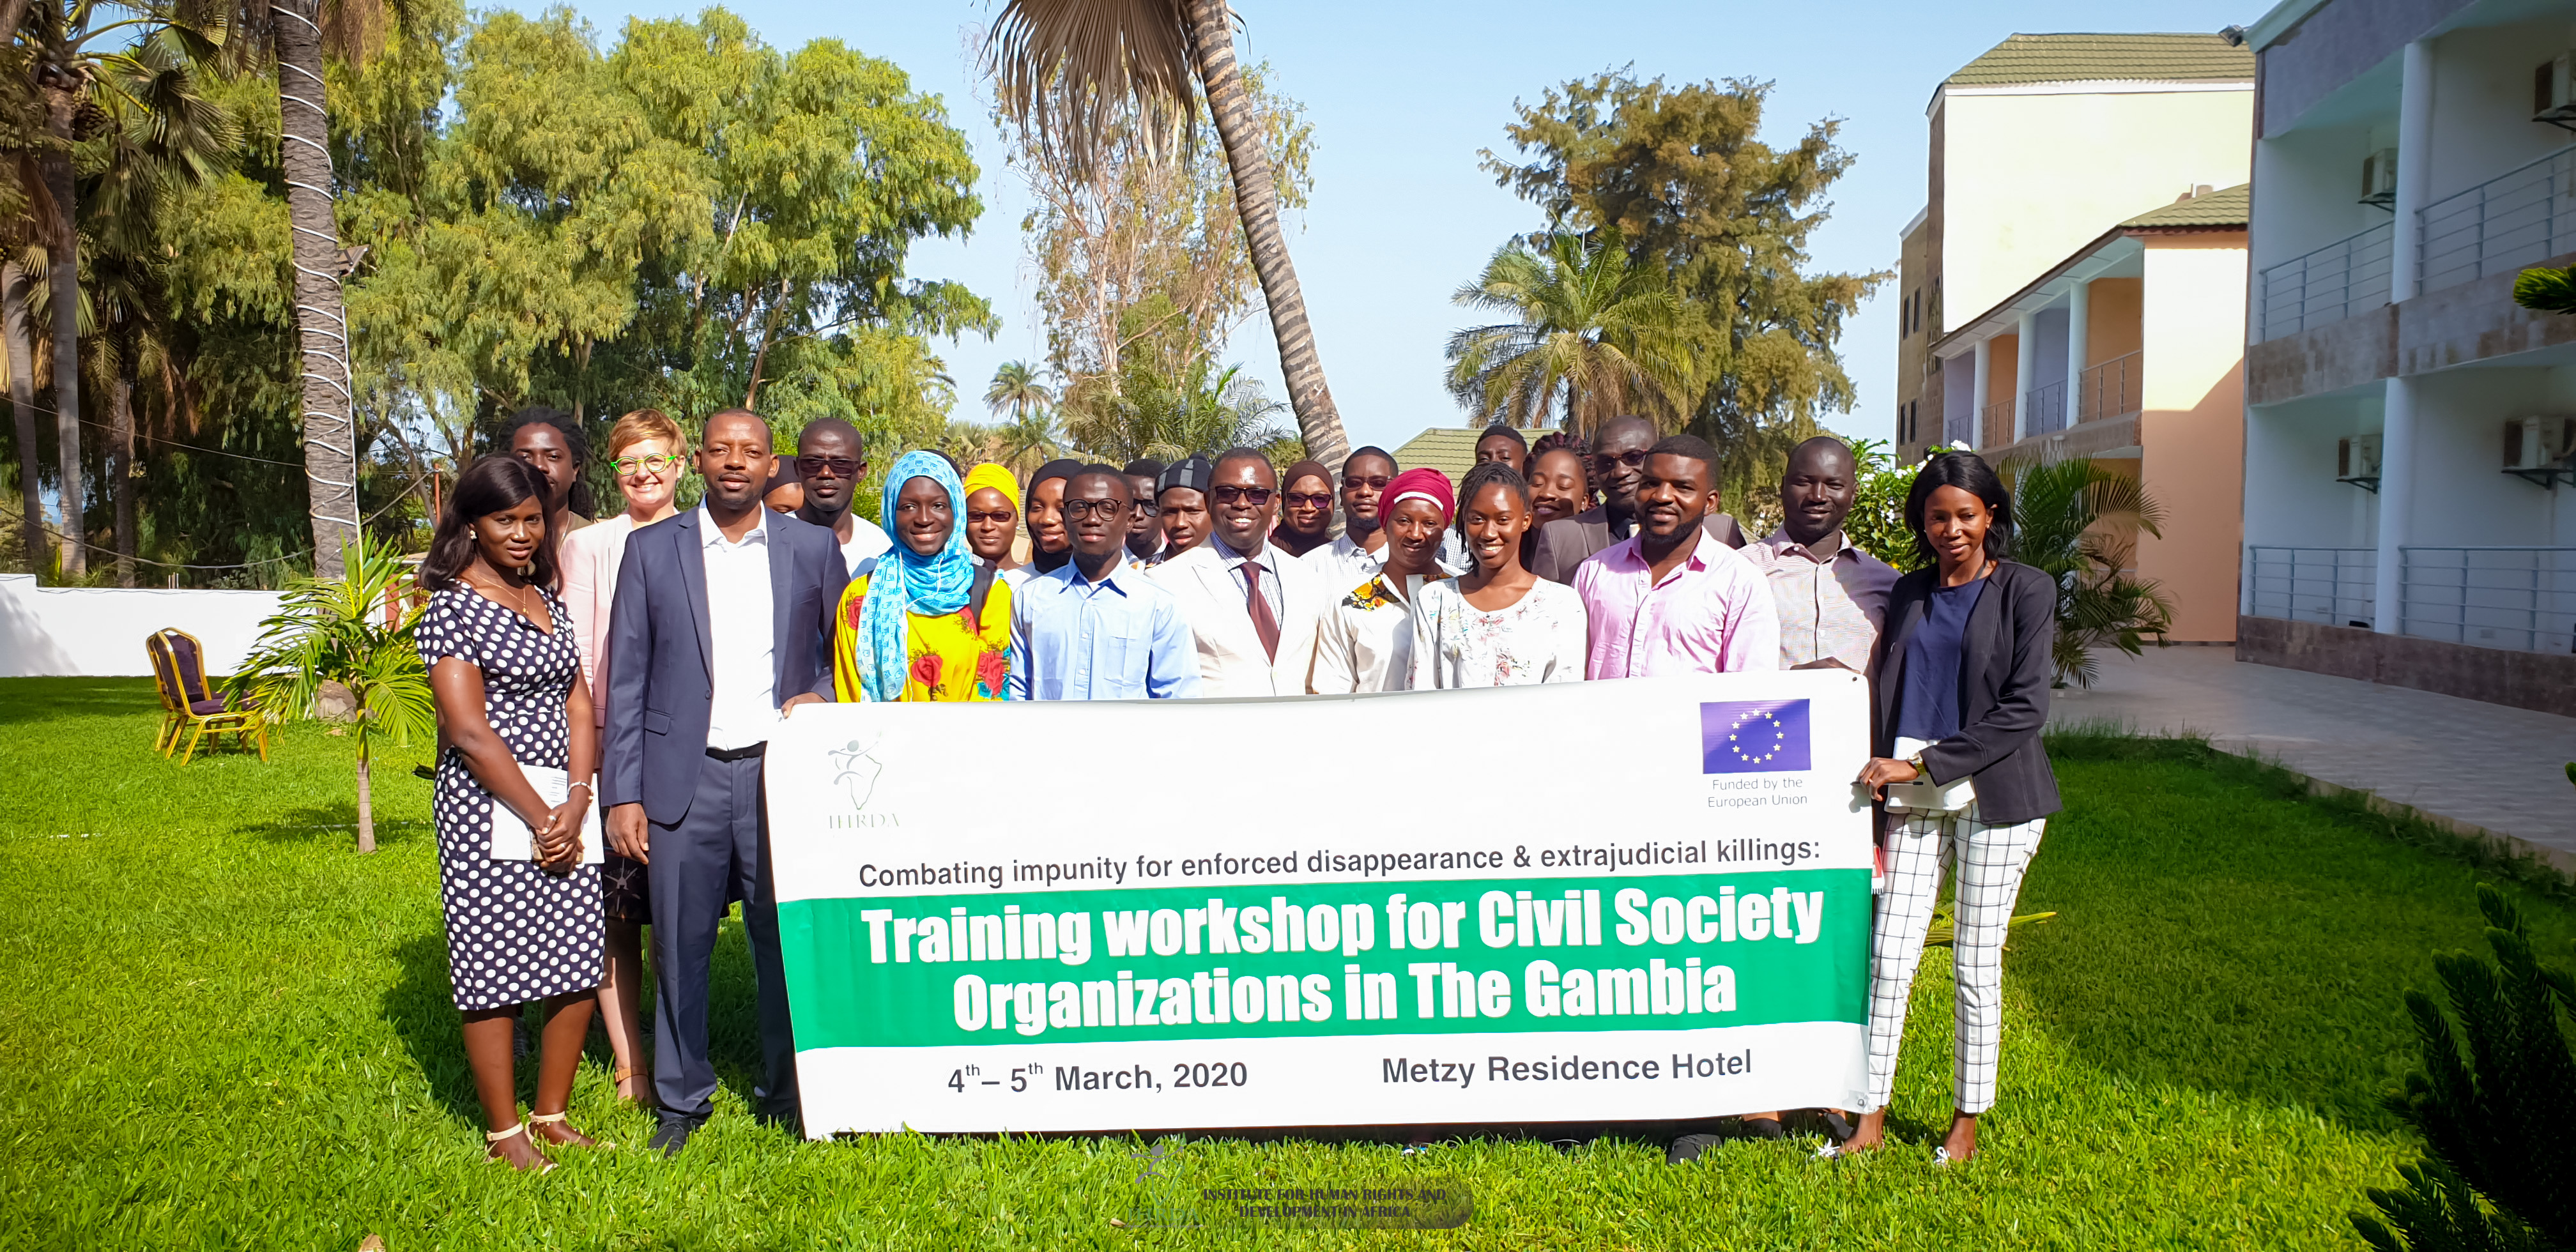 IHRDA, TANGO train Gambia CSOs on combating impunity for enforced disappearance, extrajudicial killings